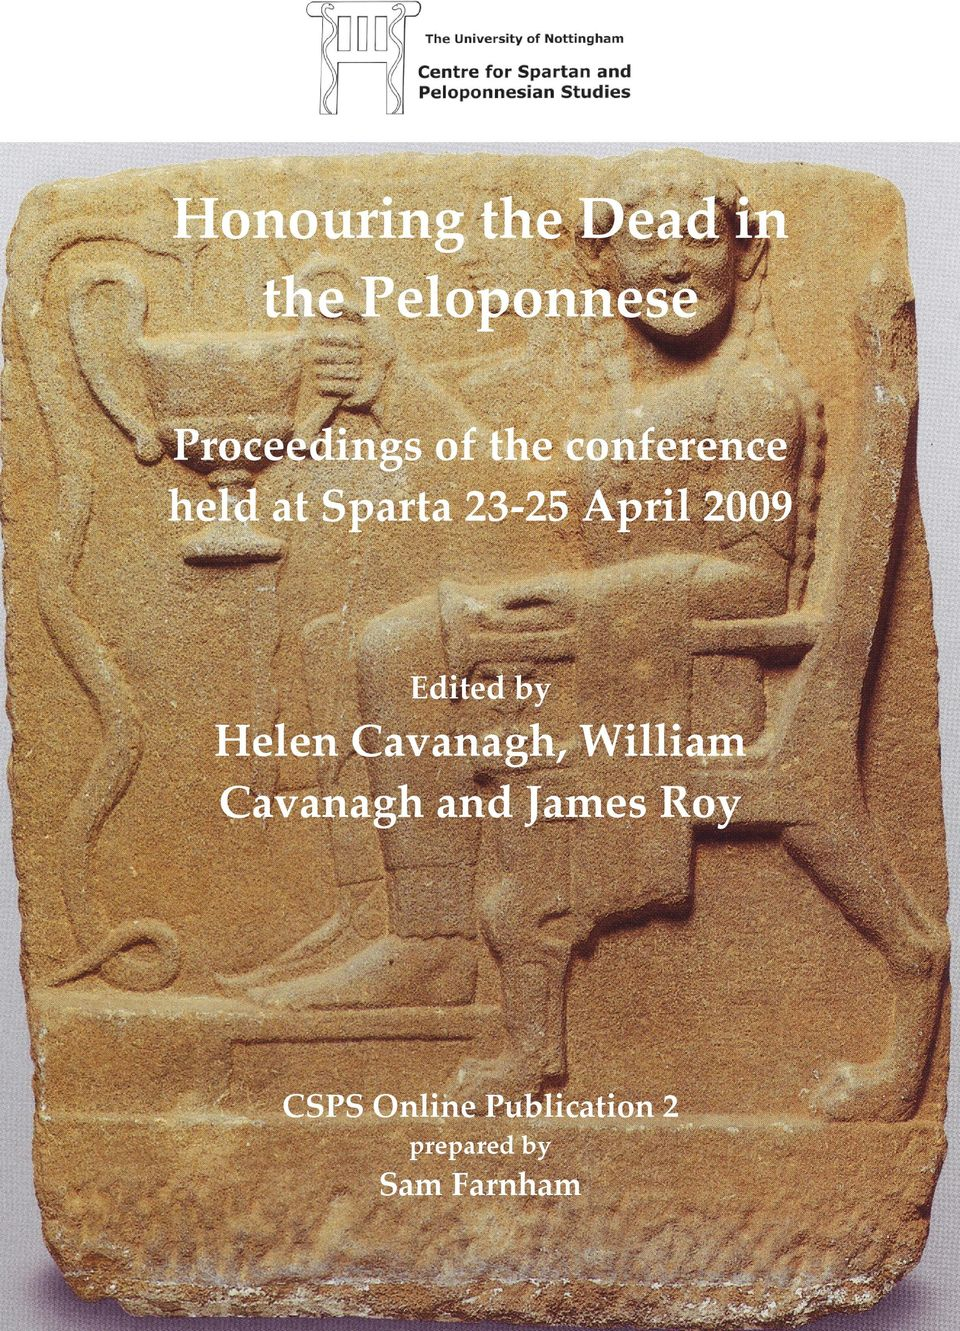 Edited by Helen Cavanagh, William Cavanagh and